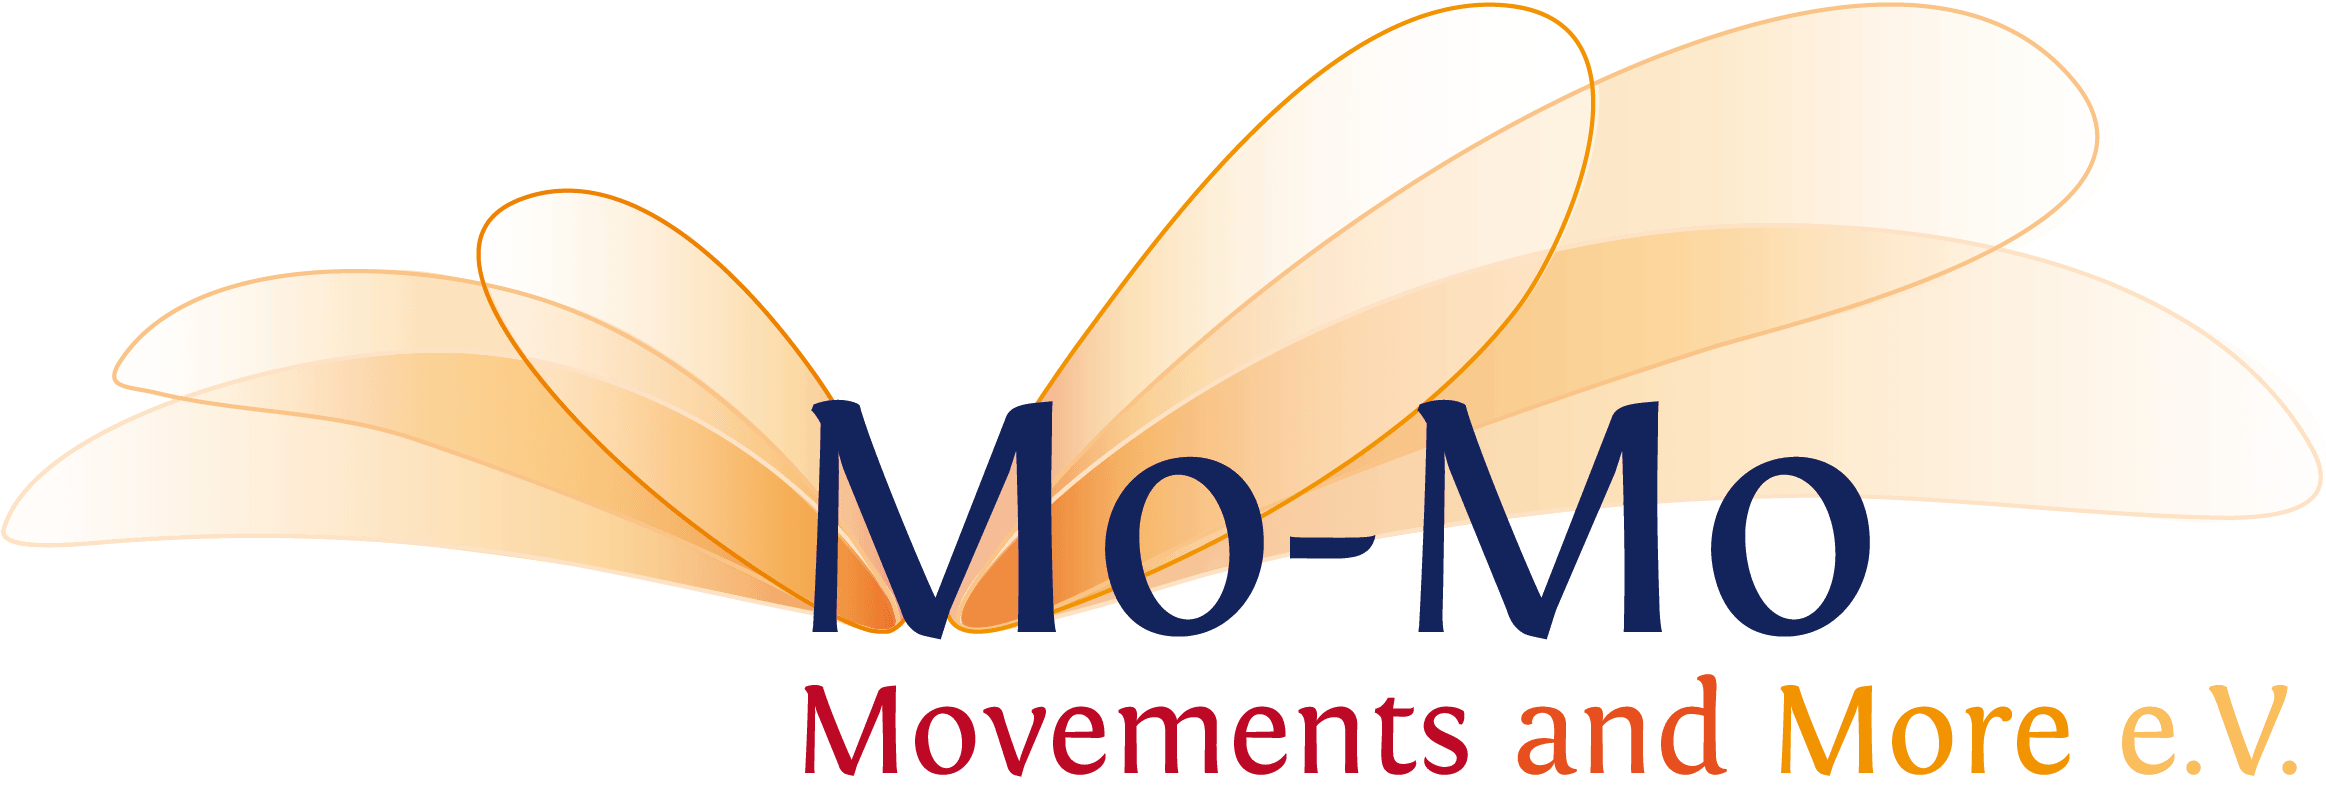 Movements and More e.V.